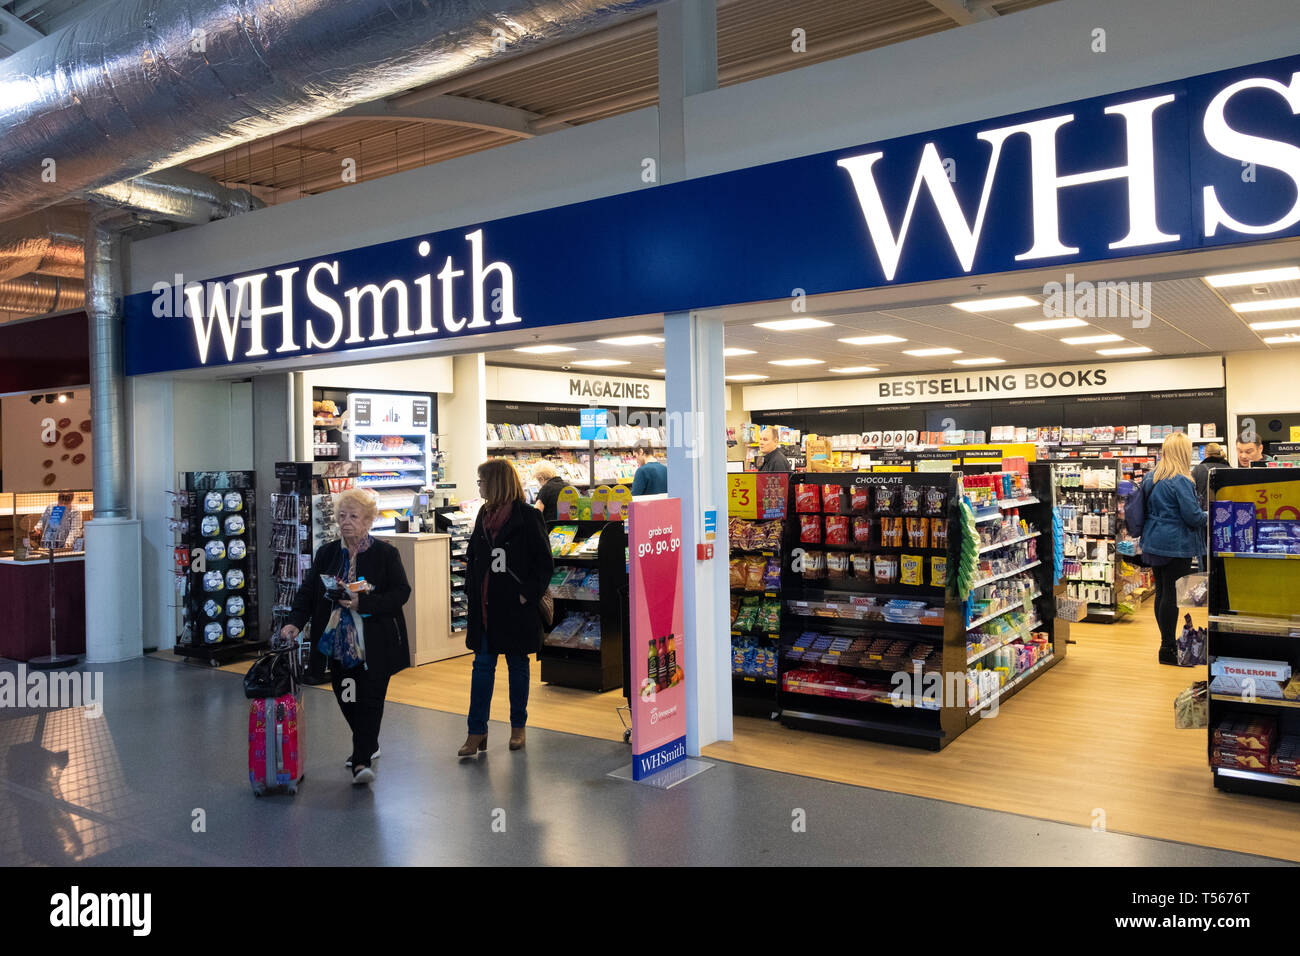 Bournemouth Airport departure hall interior WH Smith shop Stock Photo